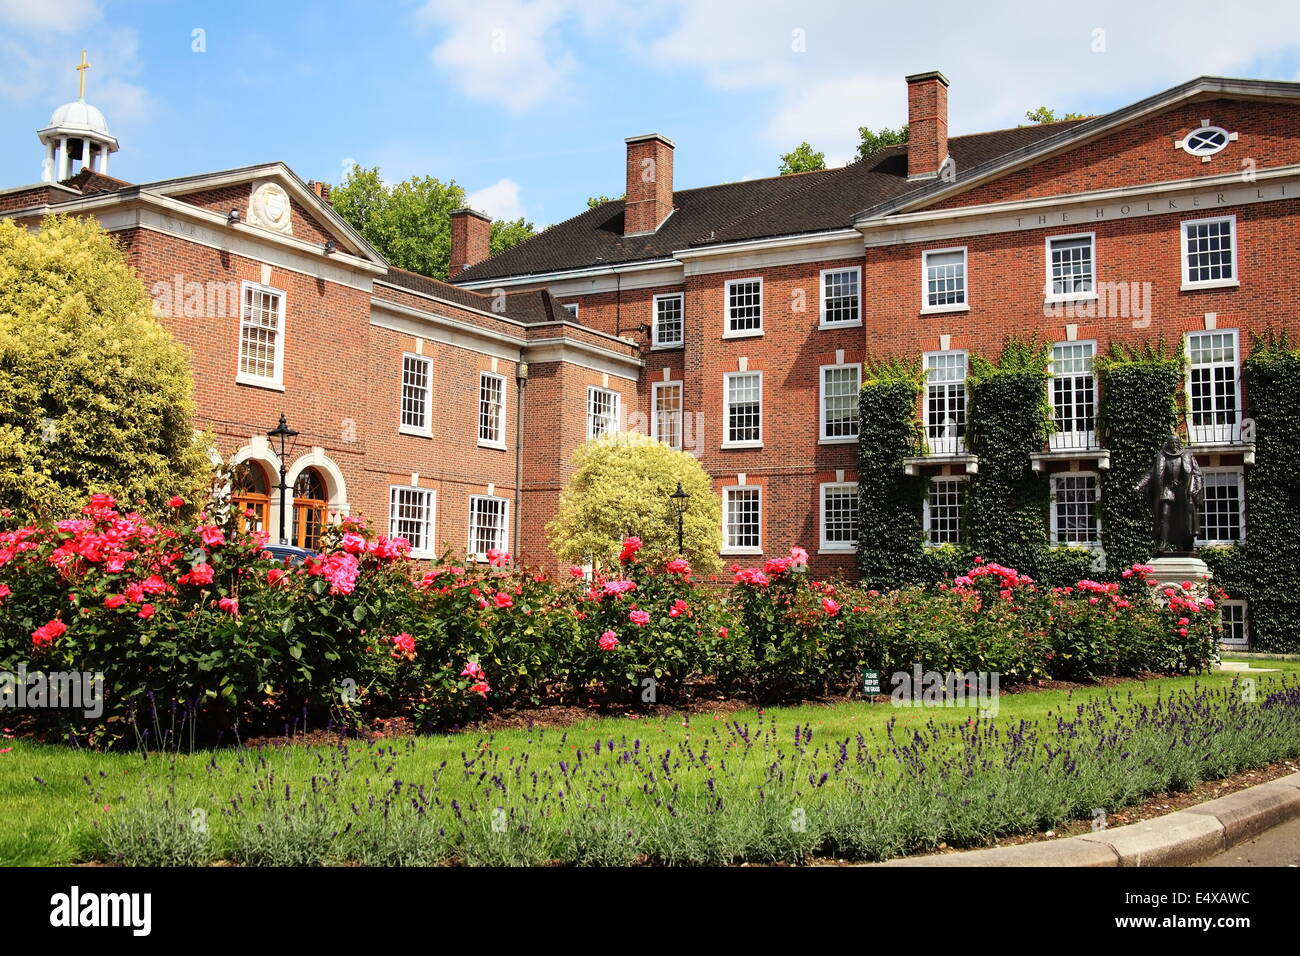 gray s inn stock photos gray s inn stock images alamy regency terraced barrister chambers law offices at the gray s inn inns of court at high